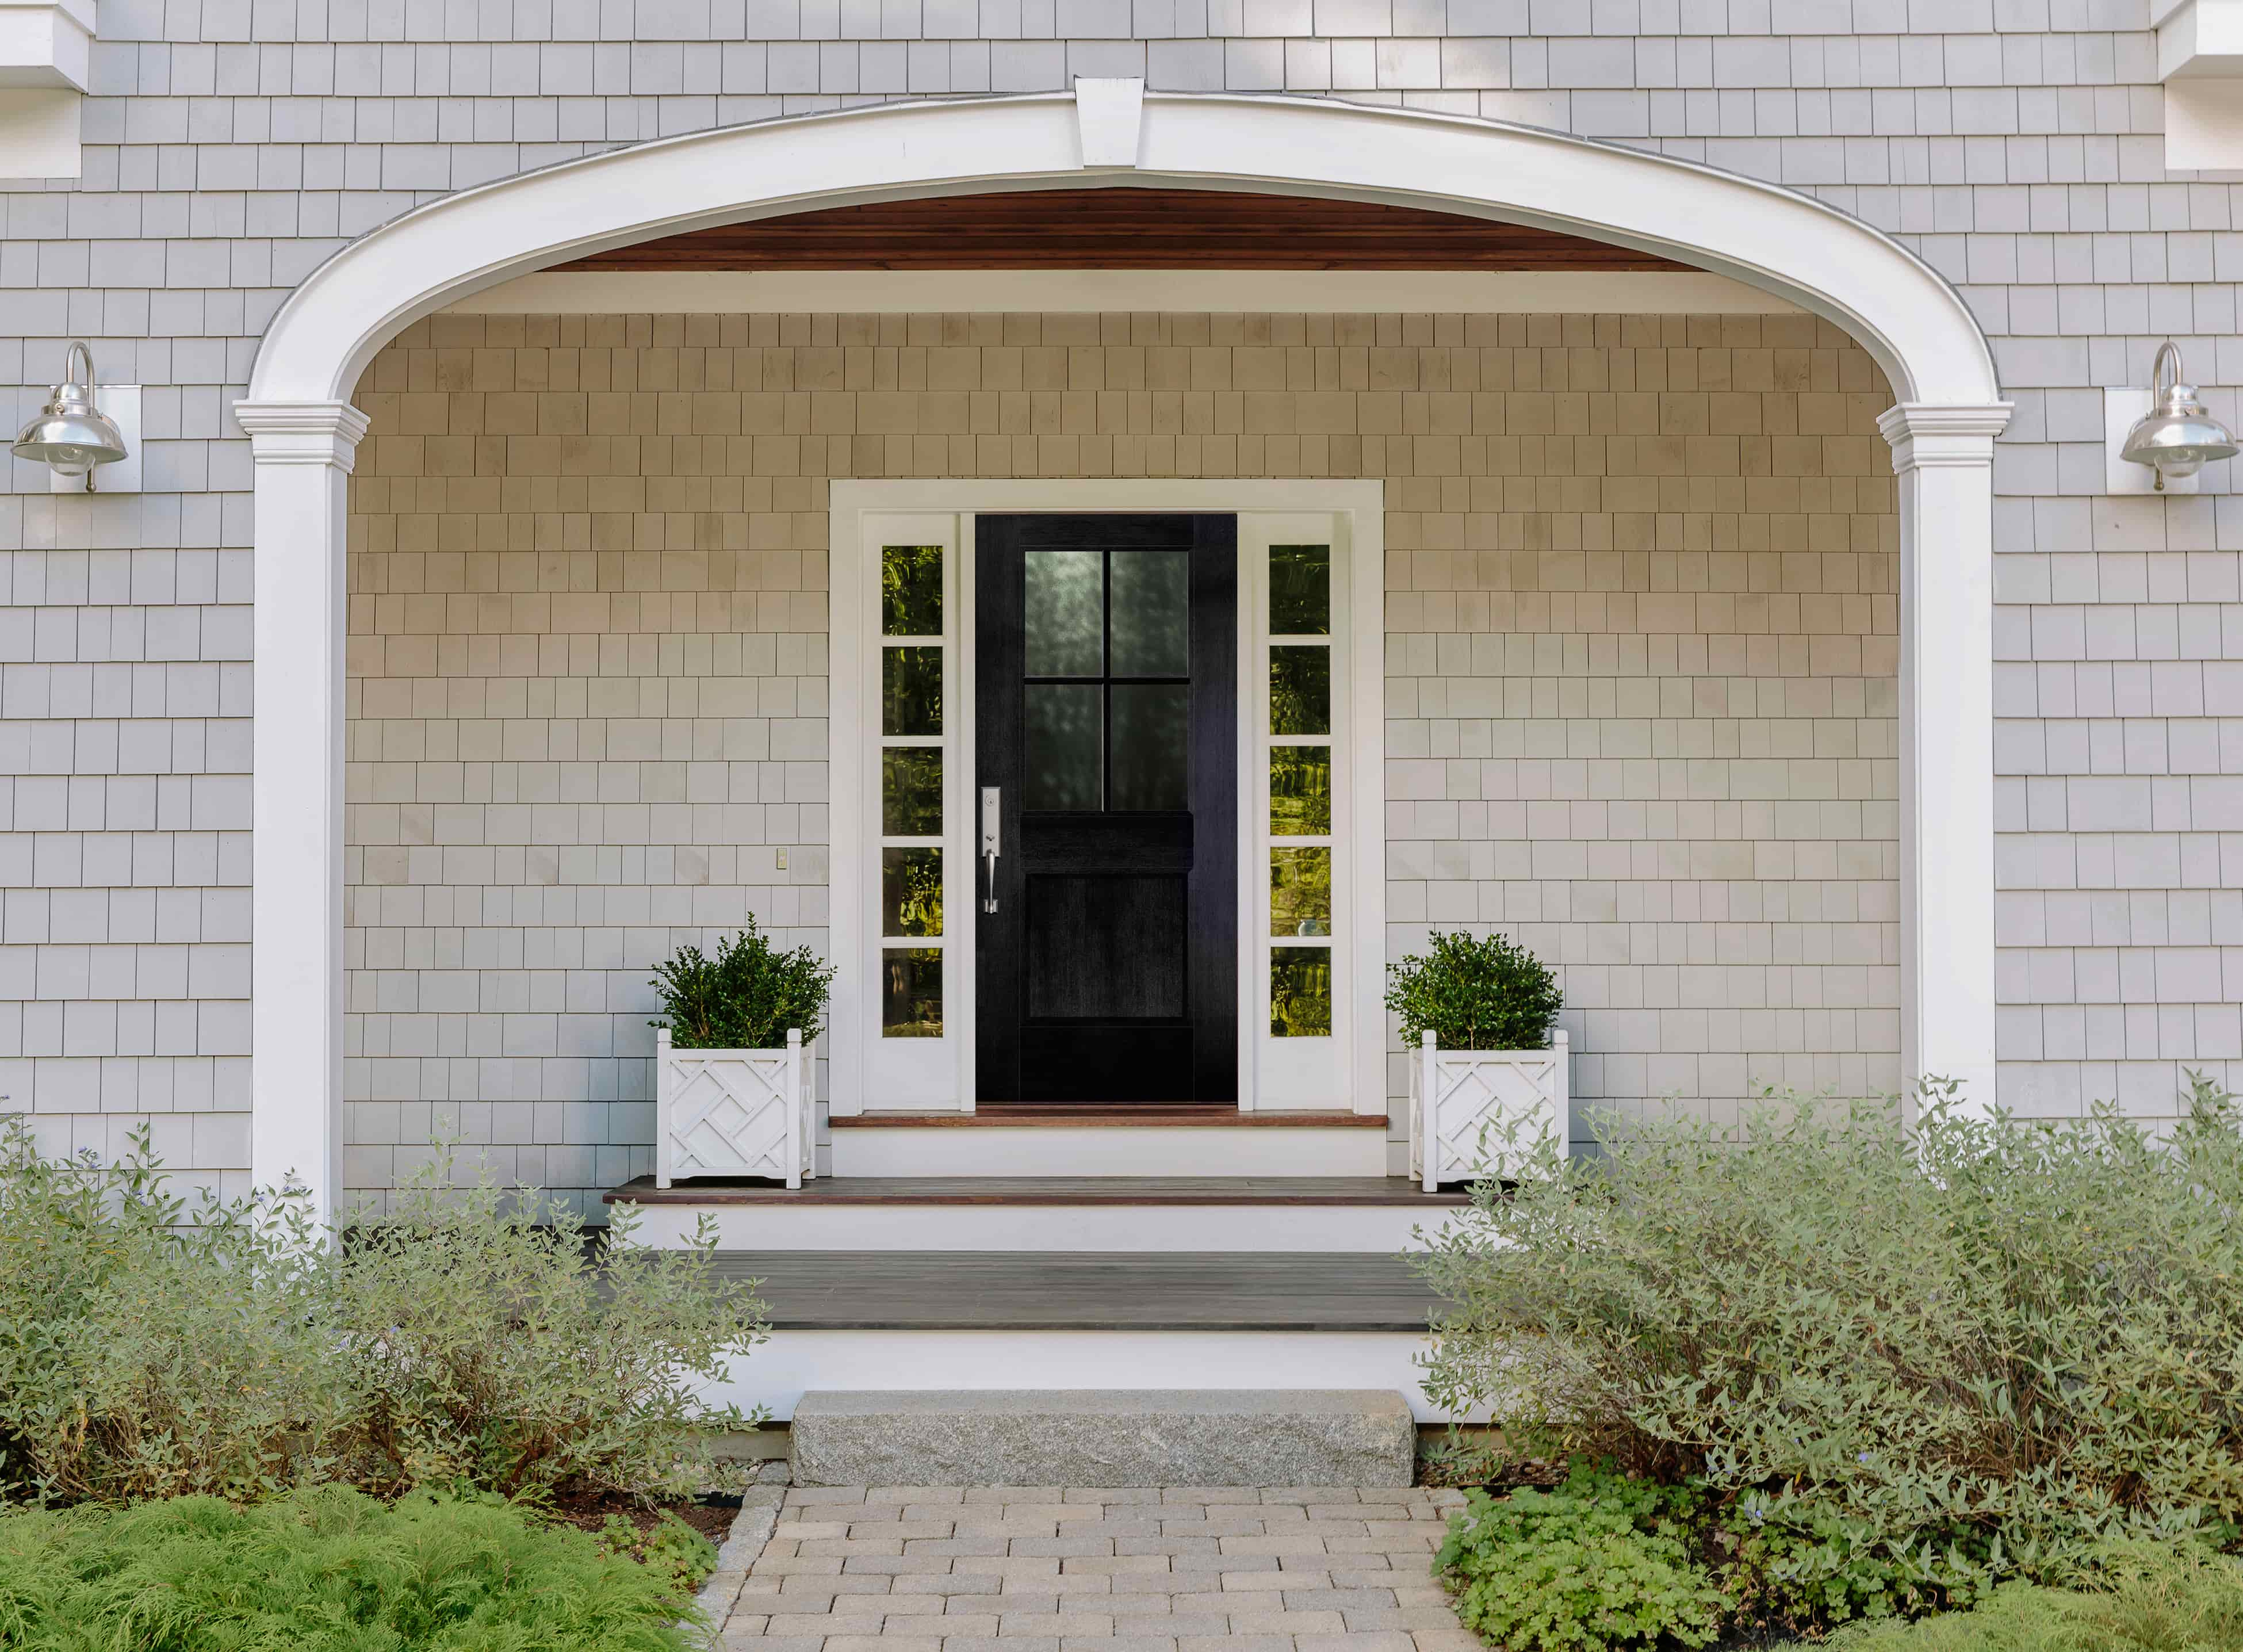 Black front door with white sidelights under arched farmhouse porch